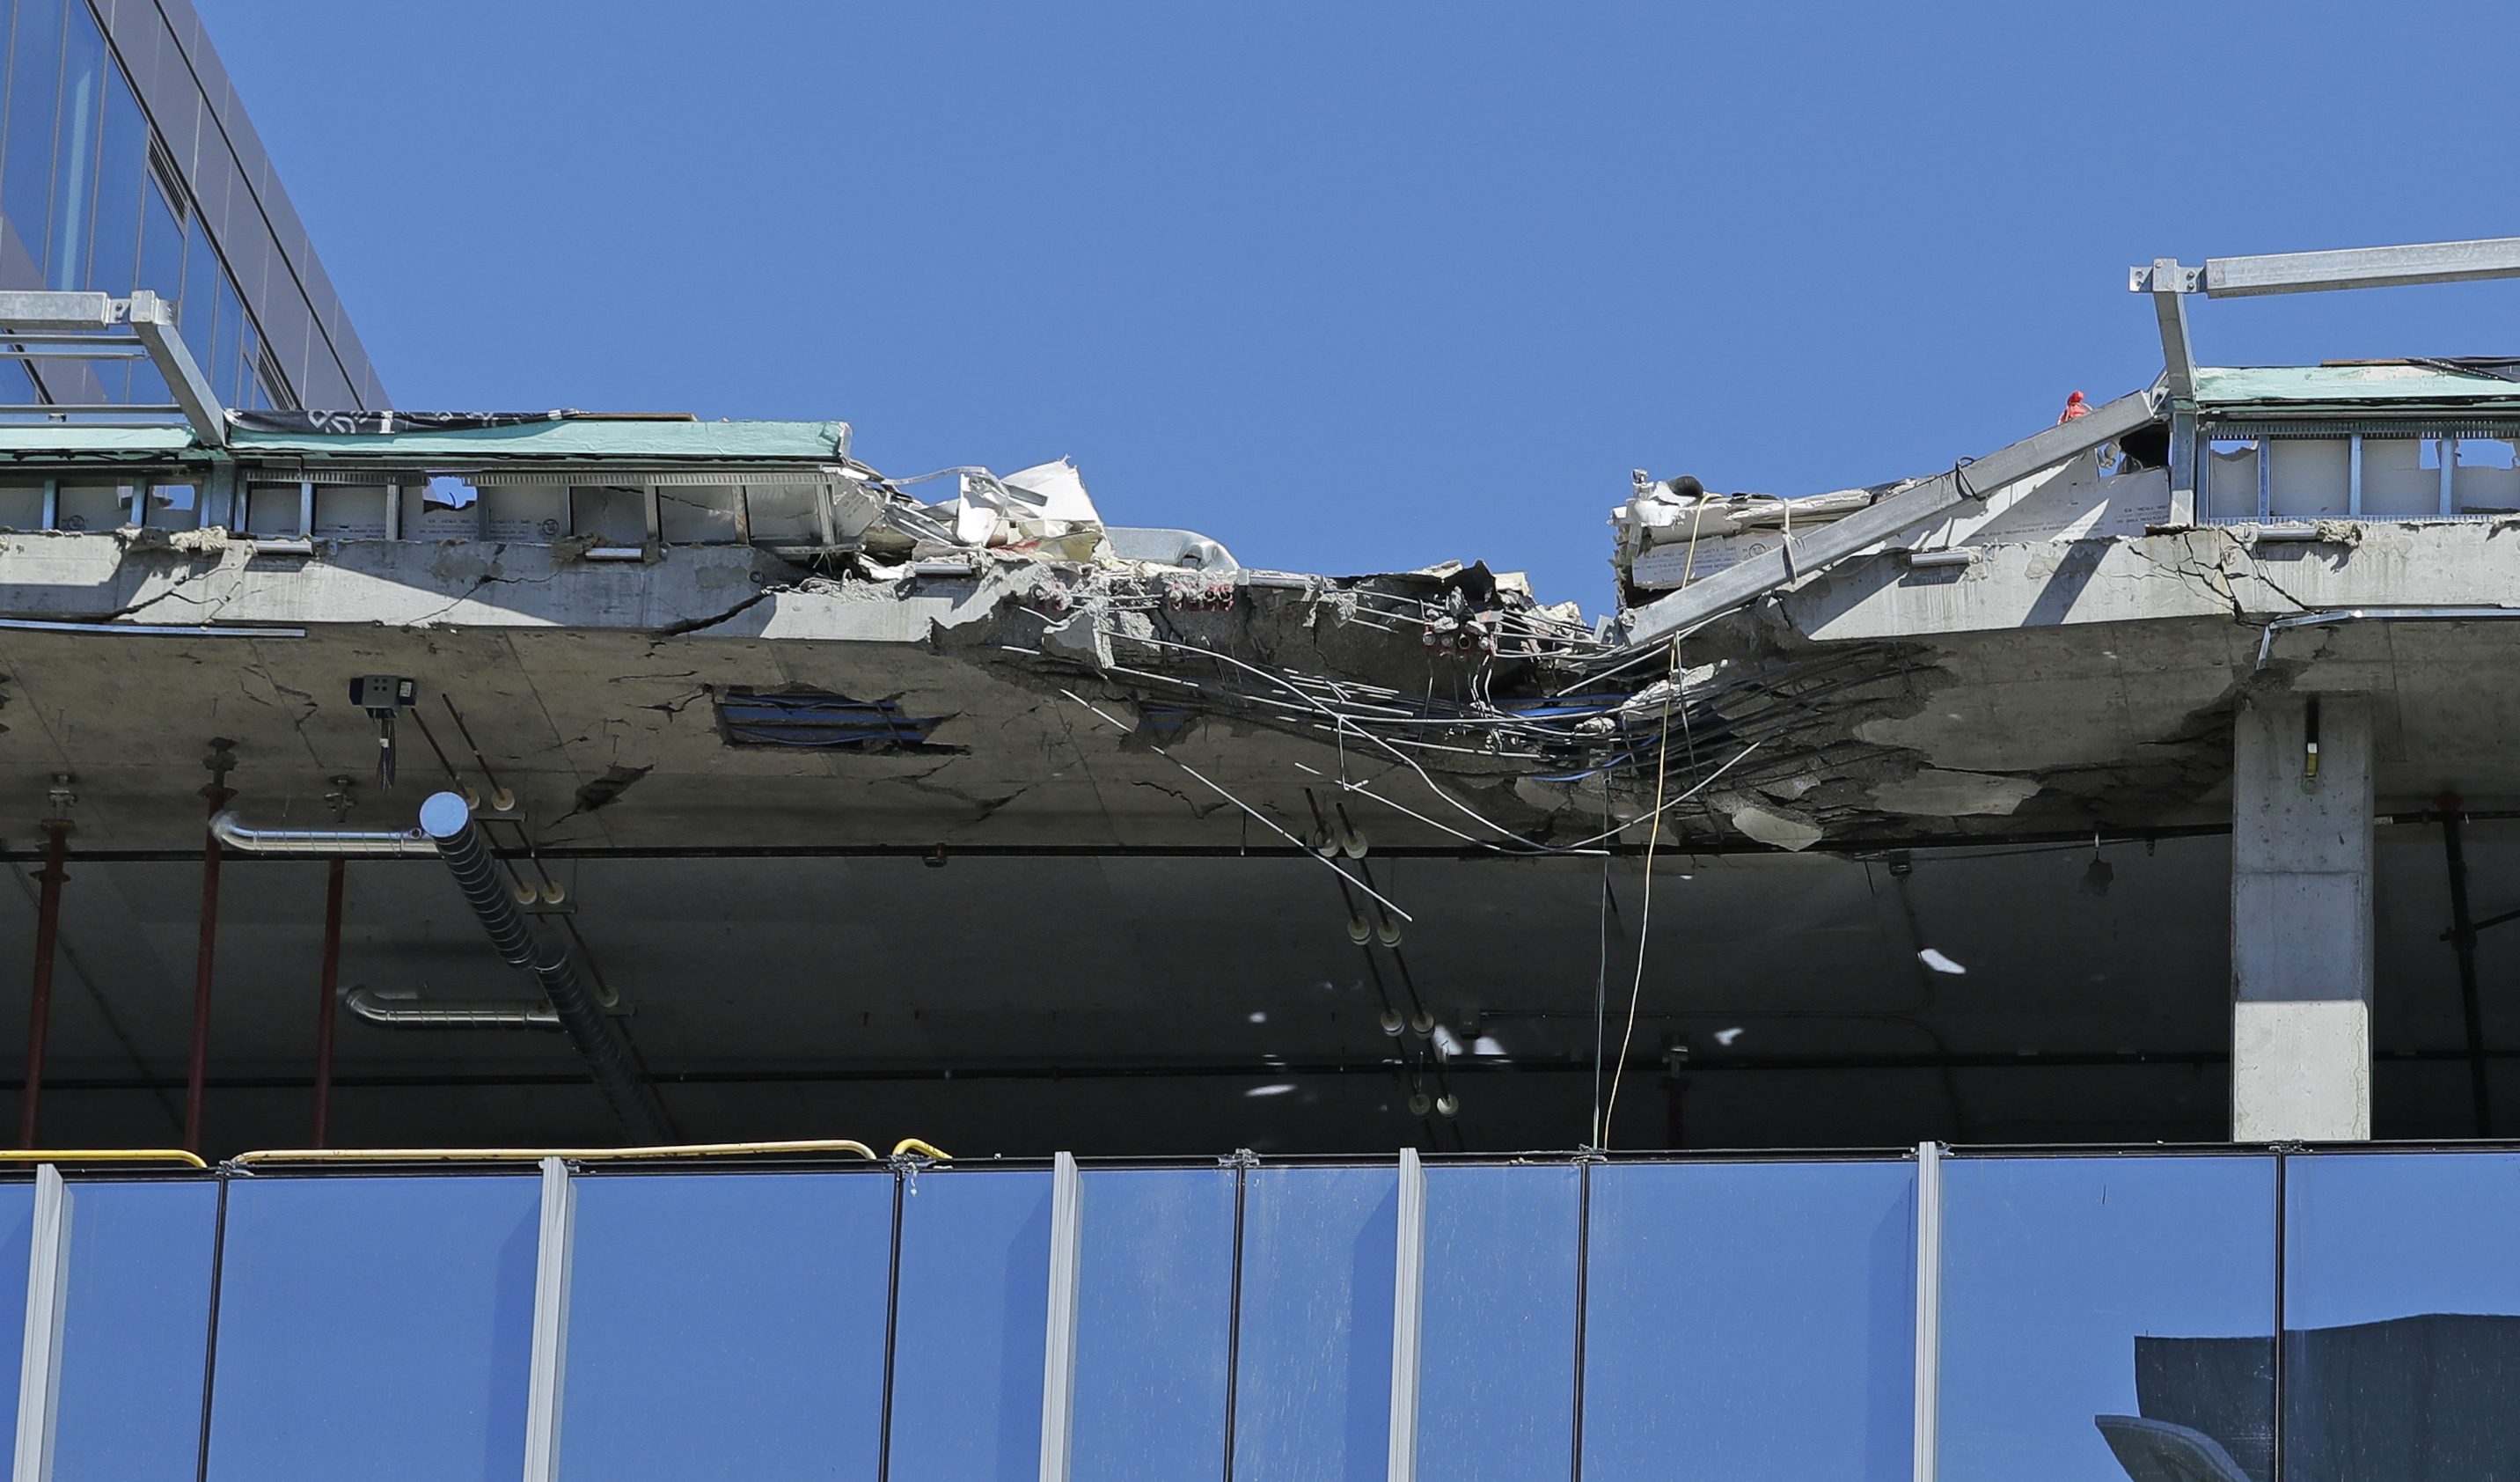 Damage to a building that was under construction when a crane collapsed on it Saturday in Seattle is shown, Monday, April 29, 2019, in Seattle. The accident killed four people. (AP Photo/Ted S. Warren)